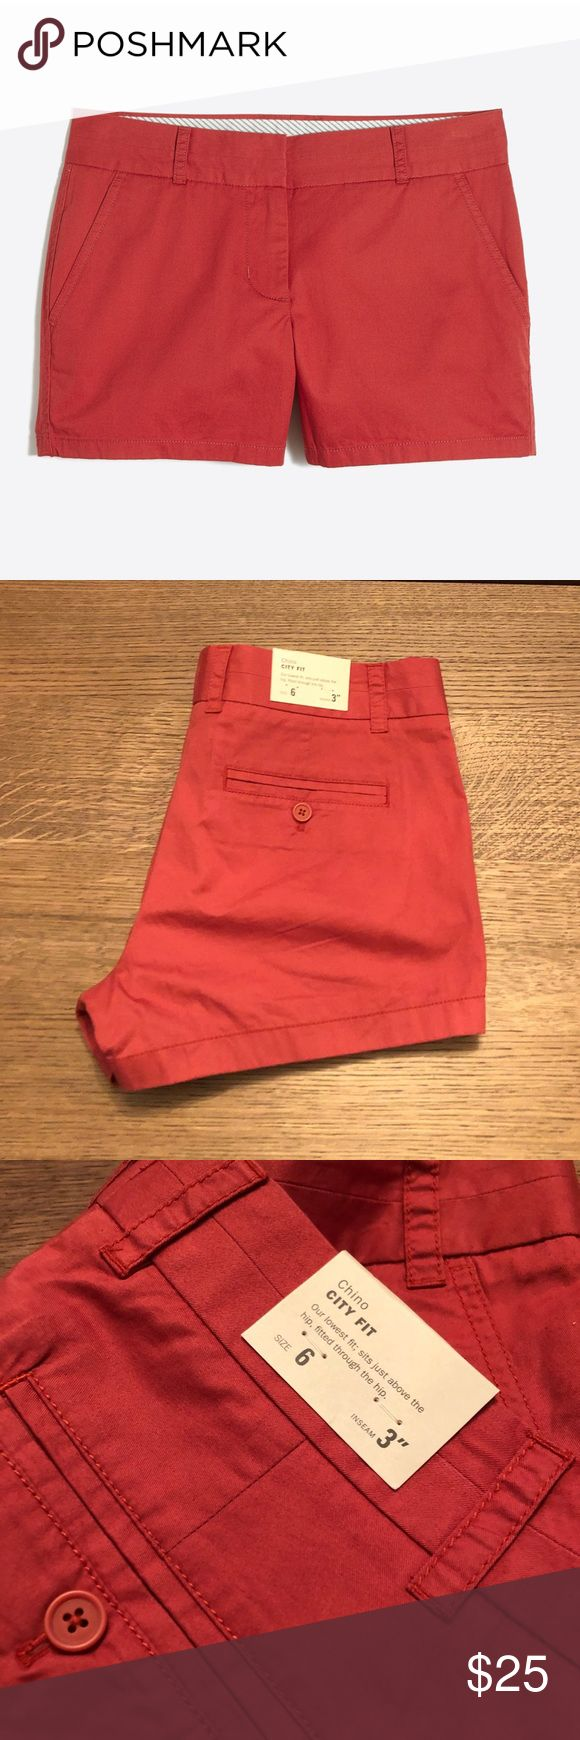 "J. Crew chino shorts Red broken in chinos  Brand new with tags  City fit  Measurements are approximate and taken laid flat  Inseam 3"" Rise 9"" Waist 17"" Leg opening 12"" Bin9 J. Crew Shorts"